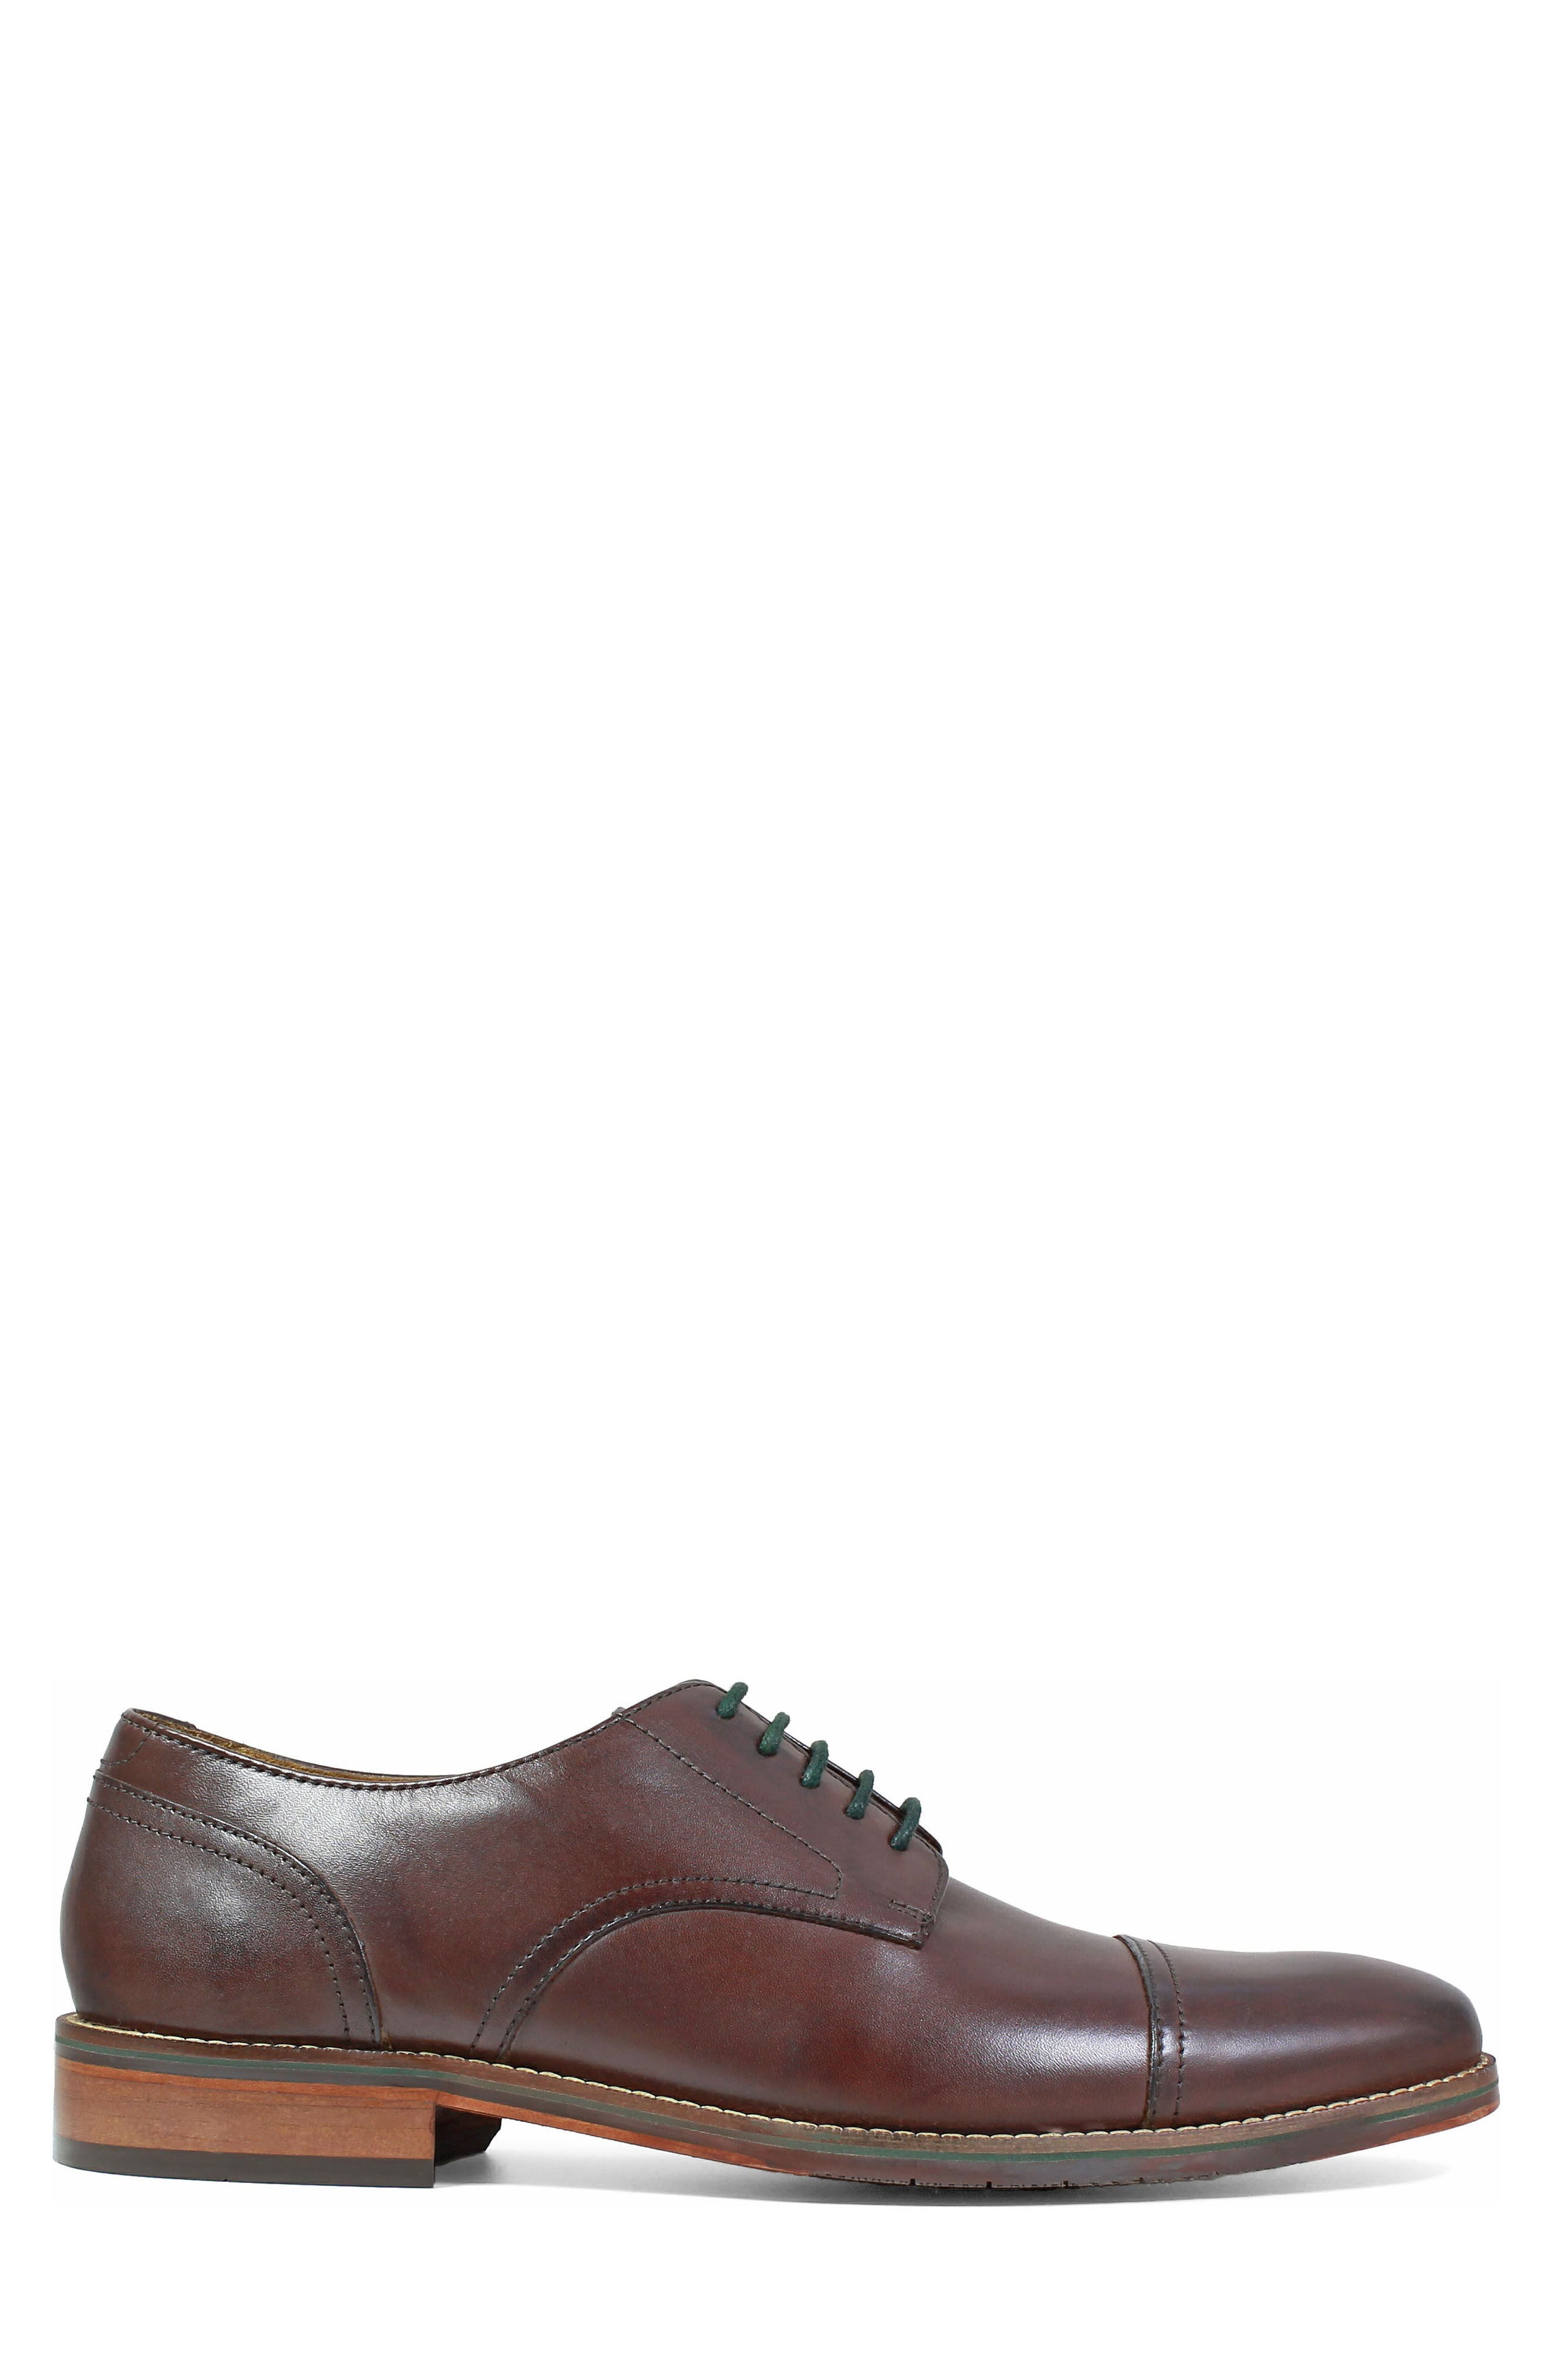 Salerno Cap Toe Derby,                             Alternate thumbnail 3, color,                             Brown Leather